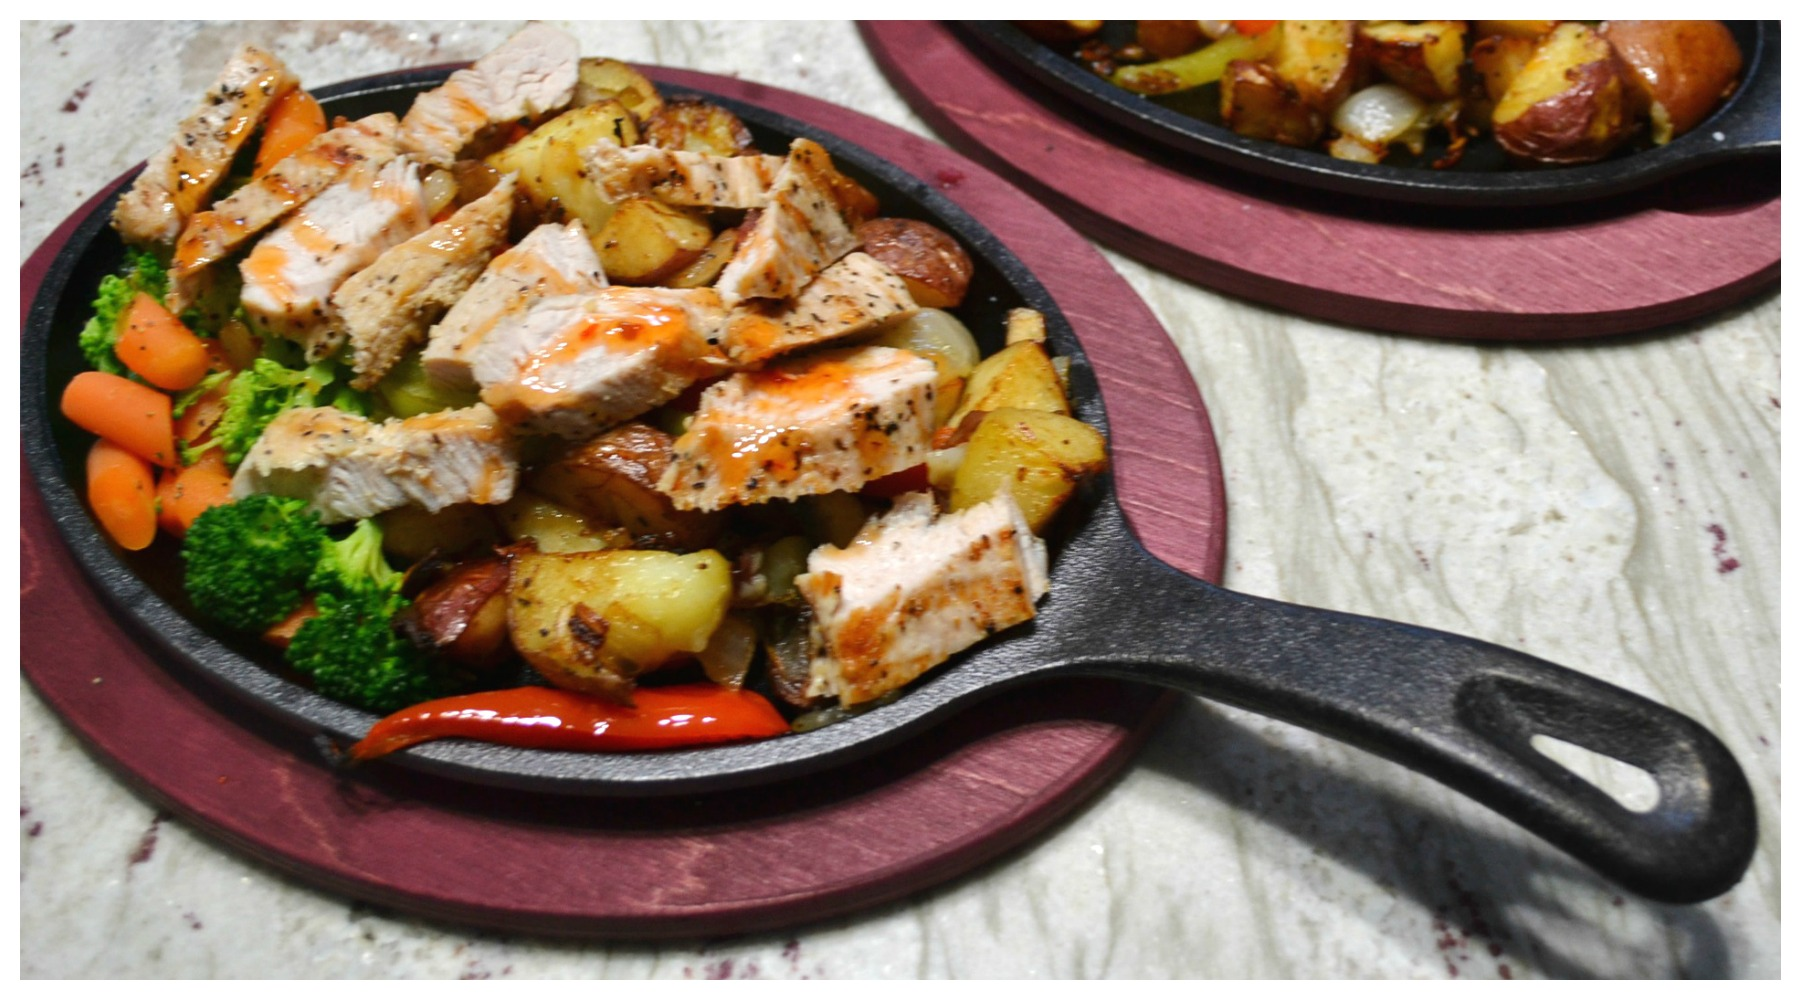 A sizzlin skillet filled with colorful veggies, sliced turkey cutlets and drizzled with sweet chili sauce.